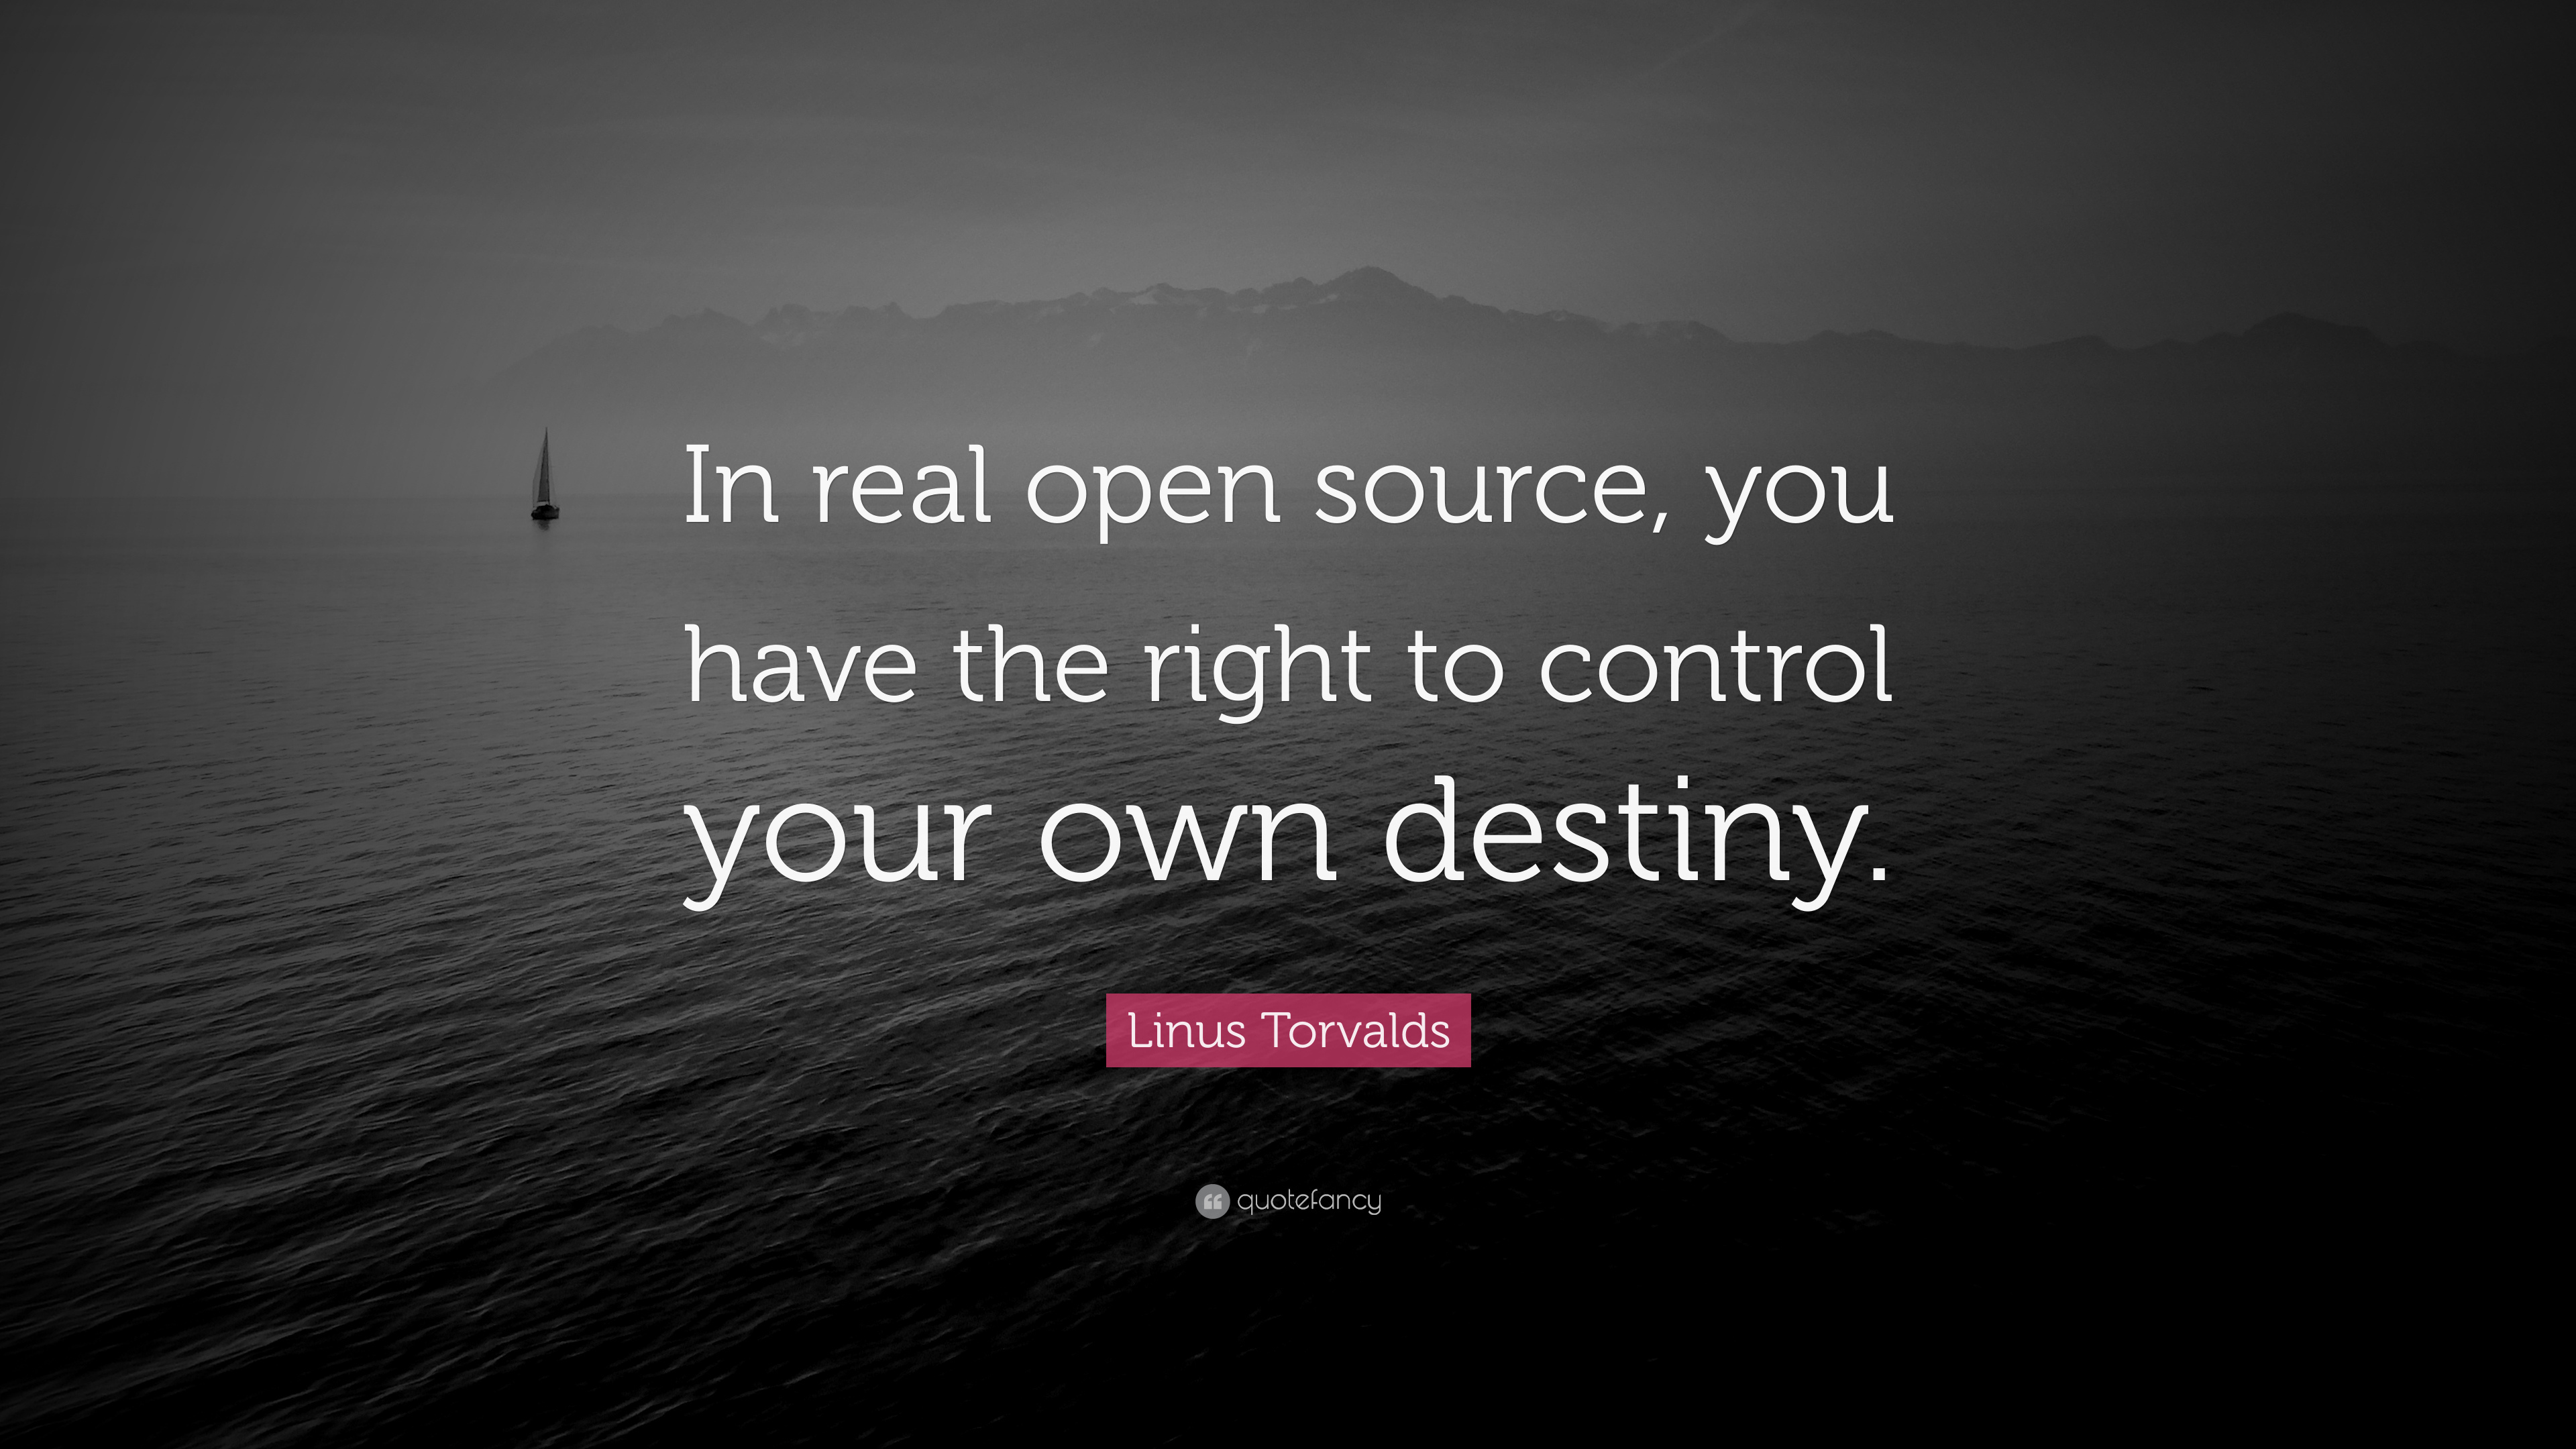 Linus Torvalds Quote In Real Open Source You Have The Right To